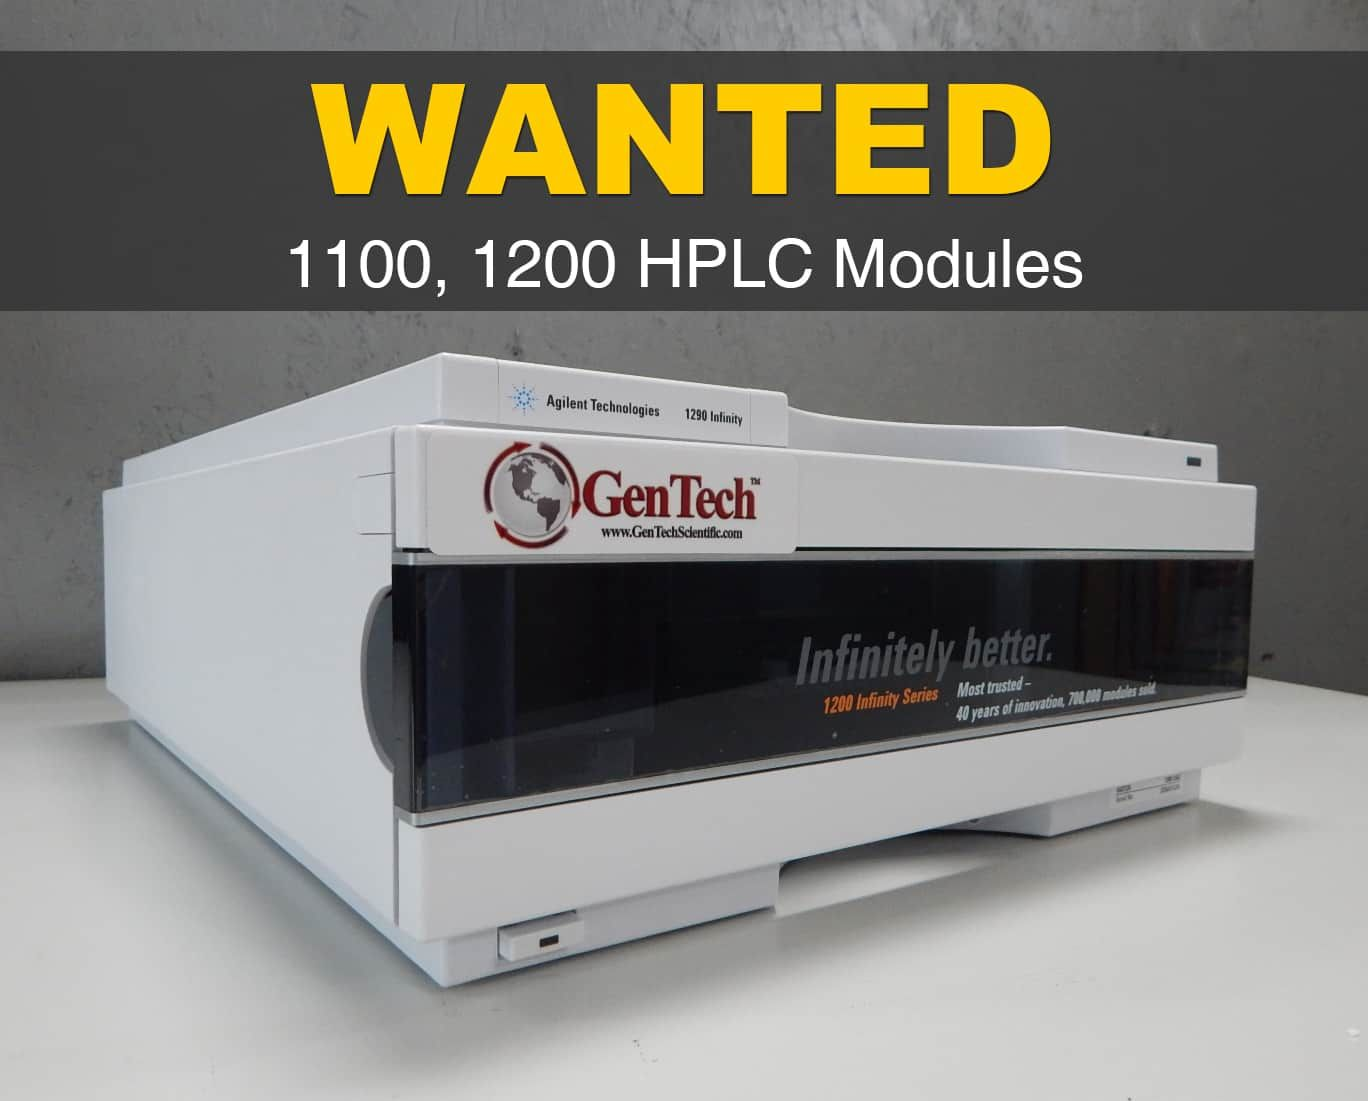 WANTED: HPLC Modules